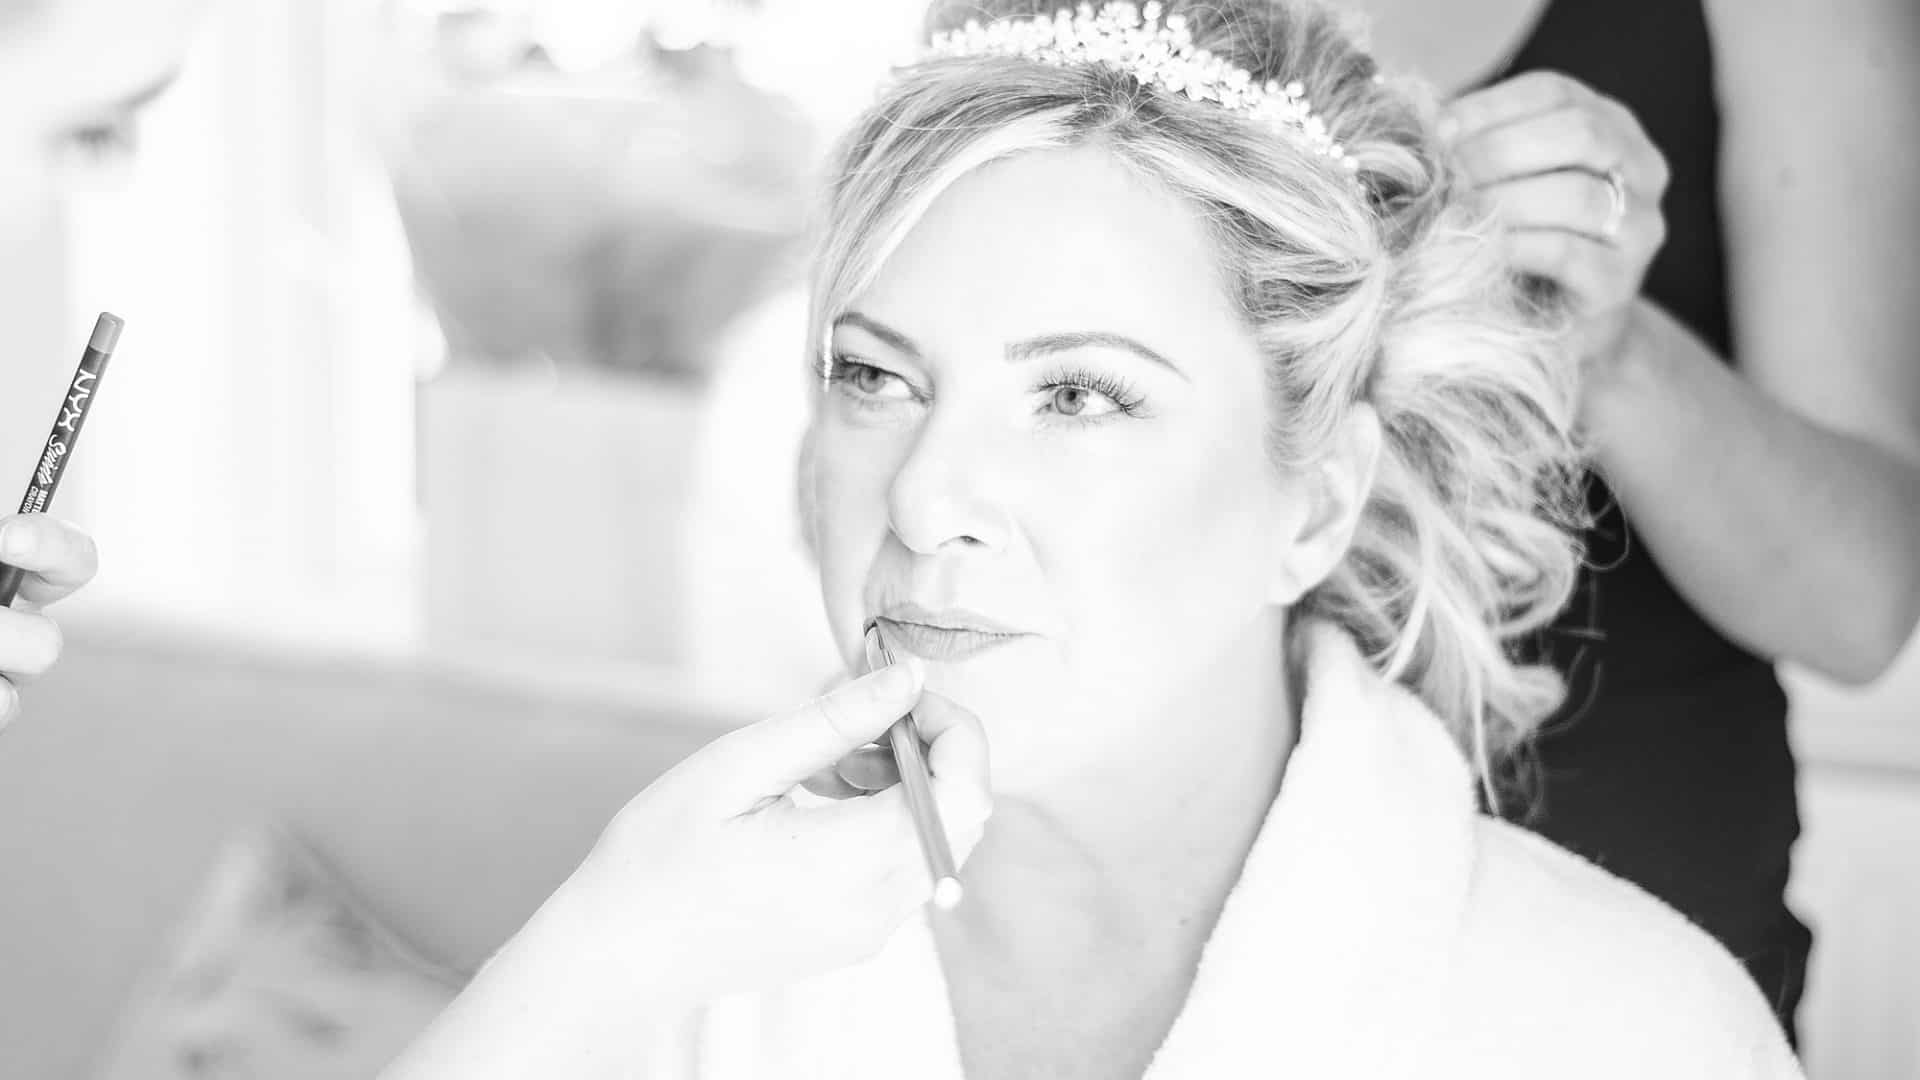 black and white images of bride getting her makeup put on